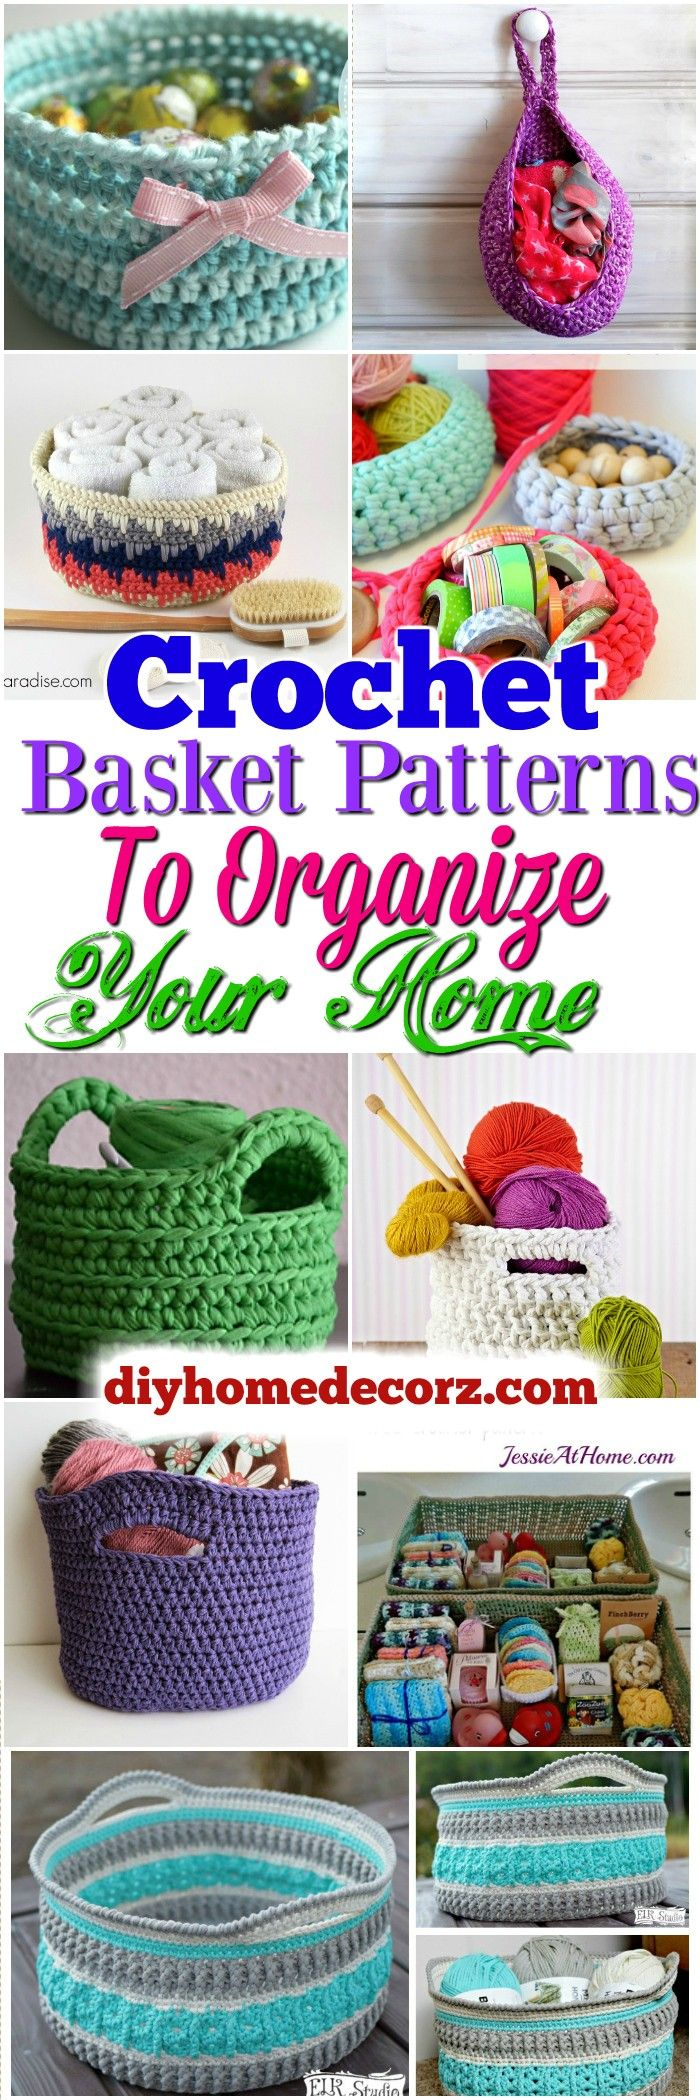 The 25 best crochet basket pattern ideas on pinterest crochet crochet basket patterns free crochet pillow patterns to brighten up your home bankloansurffo Image collections